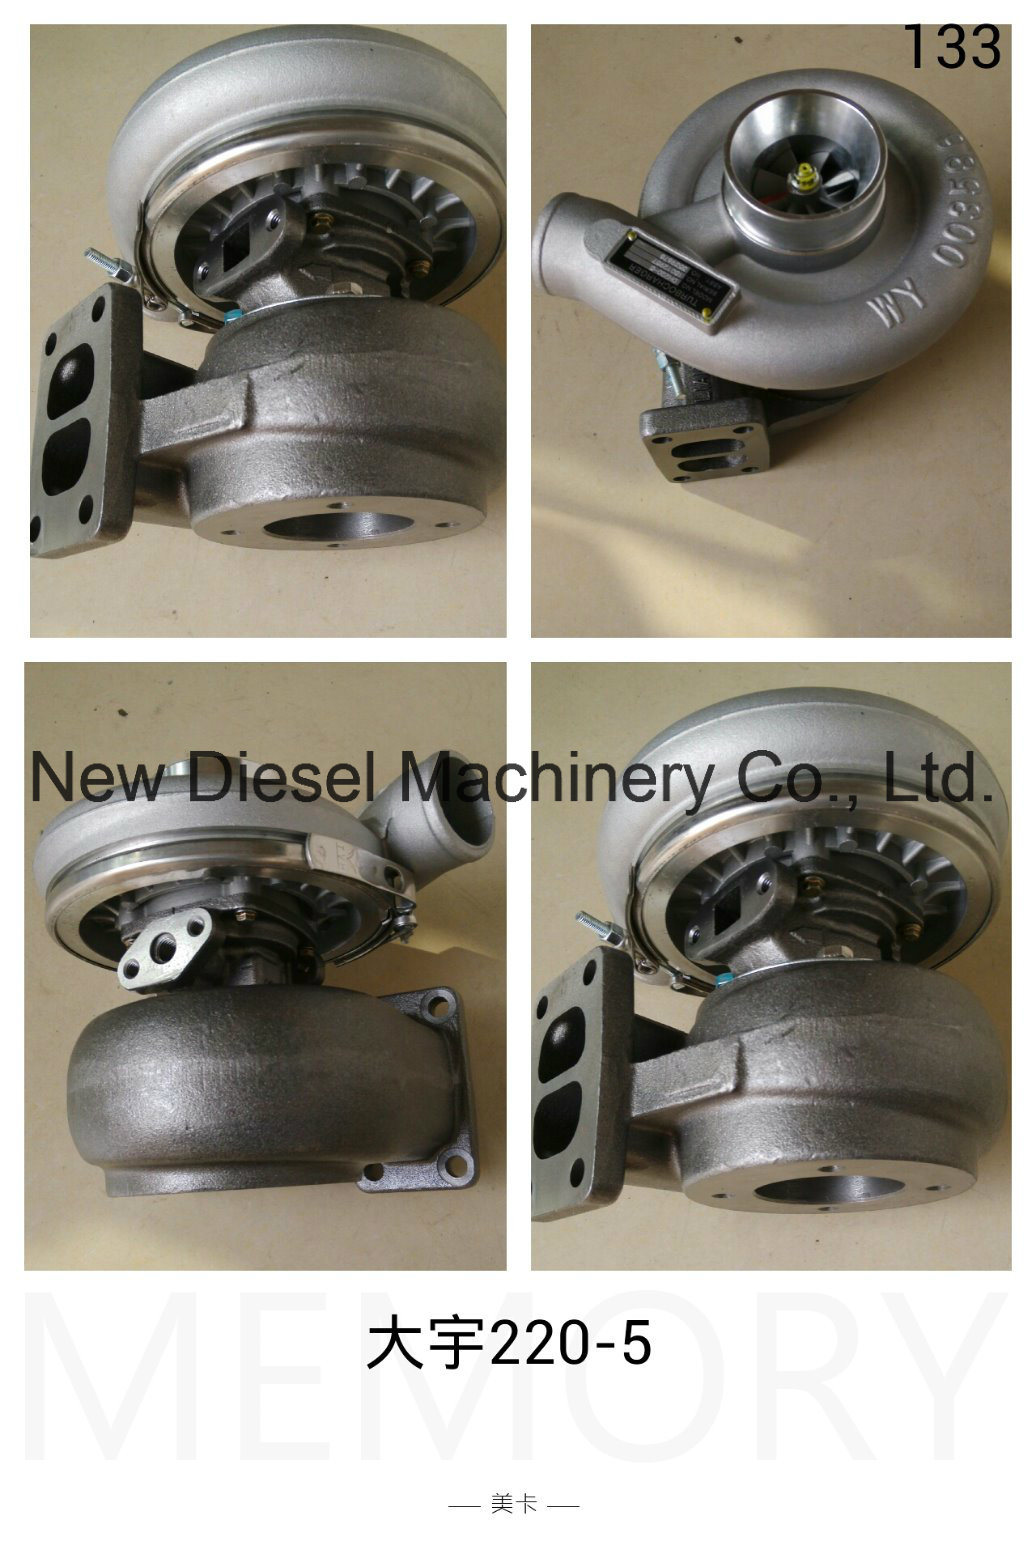 Turbocharger Rhf4 Vp20 97300197 Turbo Charger Factory for Car Truck Tractor Alibaba China OEM Model